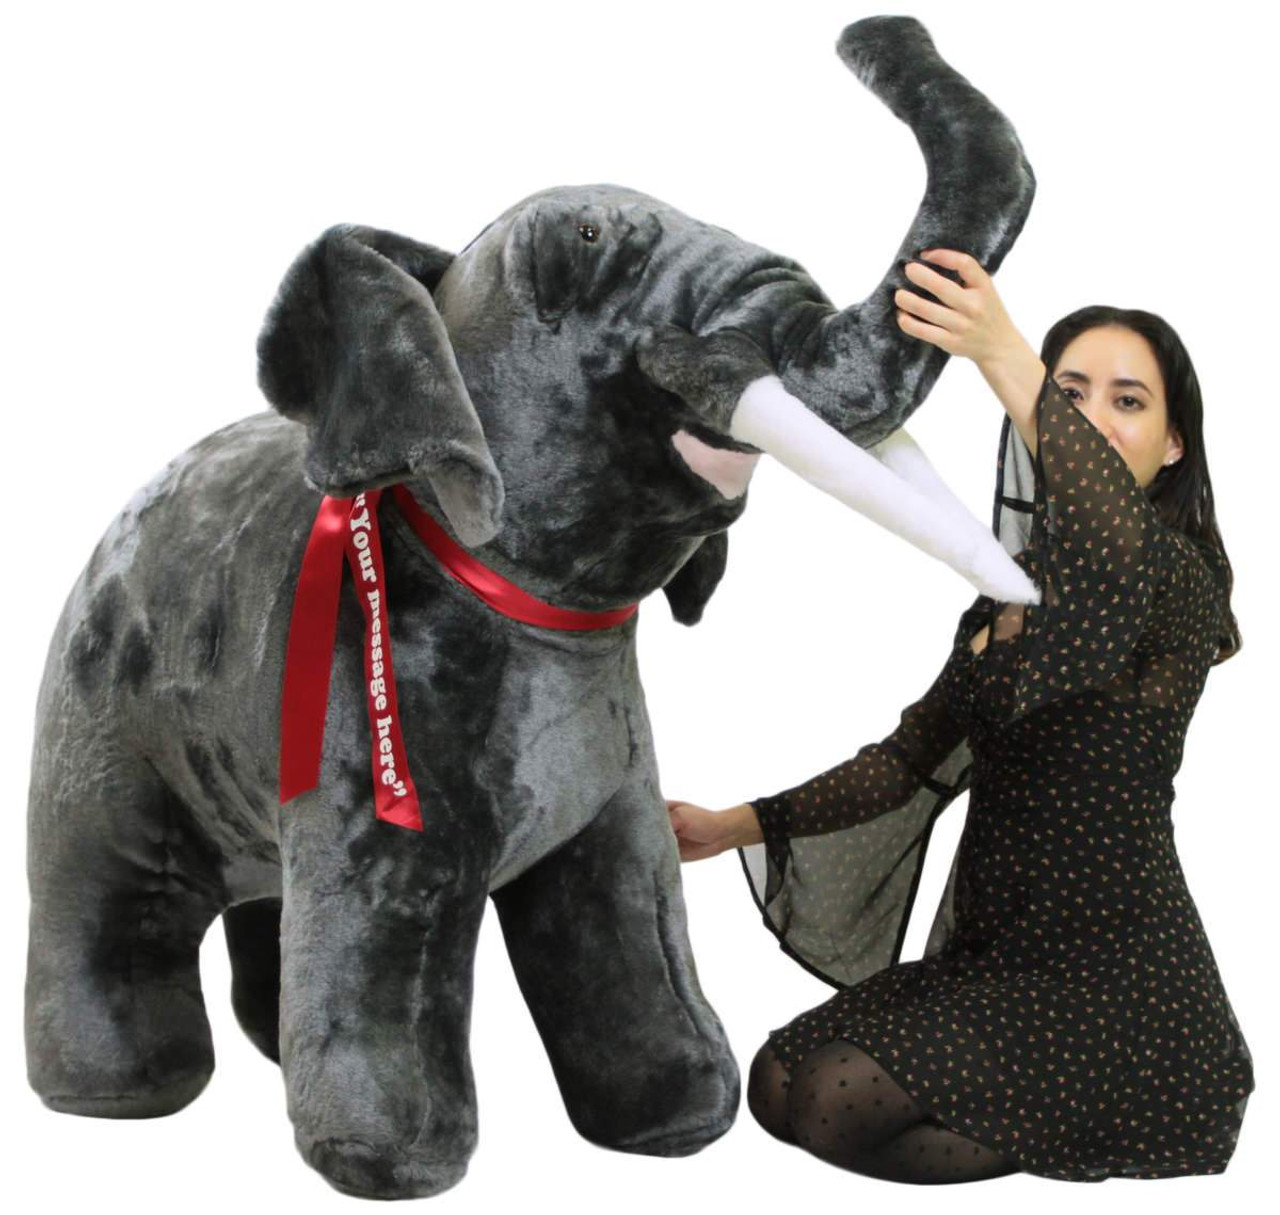 Personalized Giant Stuffed Elephant 48 Inch Soft American Made Big